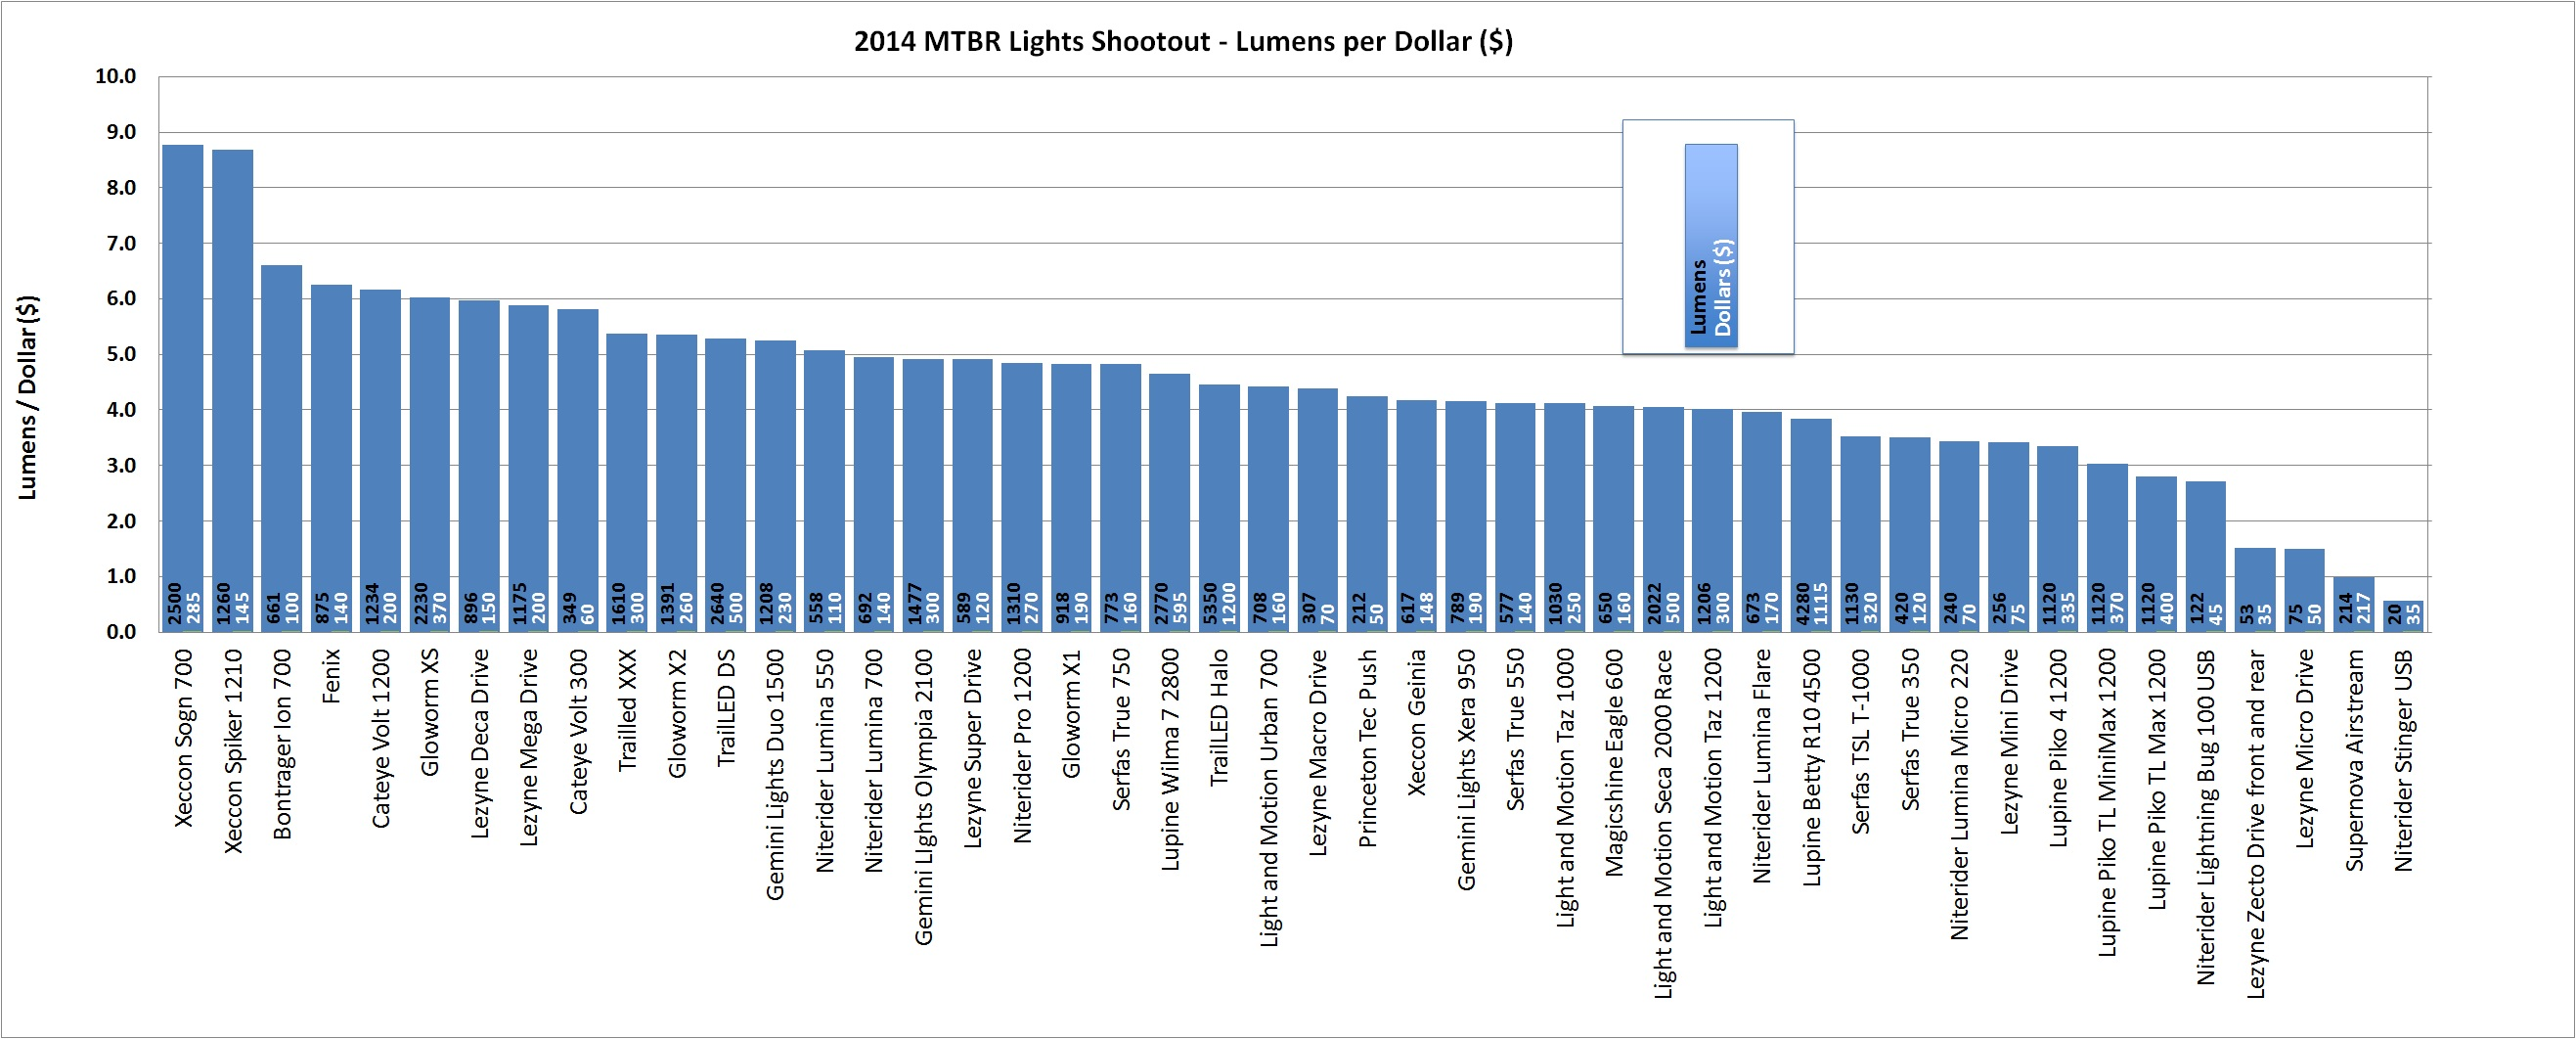 2014 Mtbr Lights Shootout - Lumens per Dollar